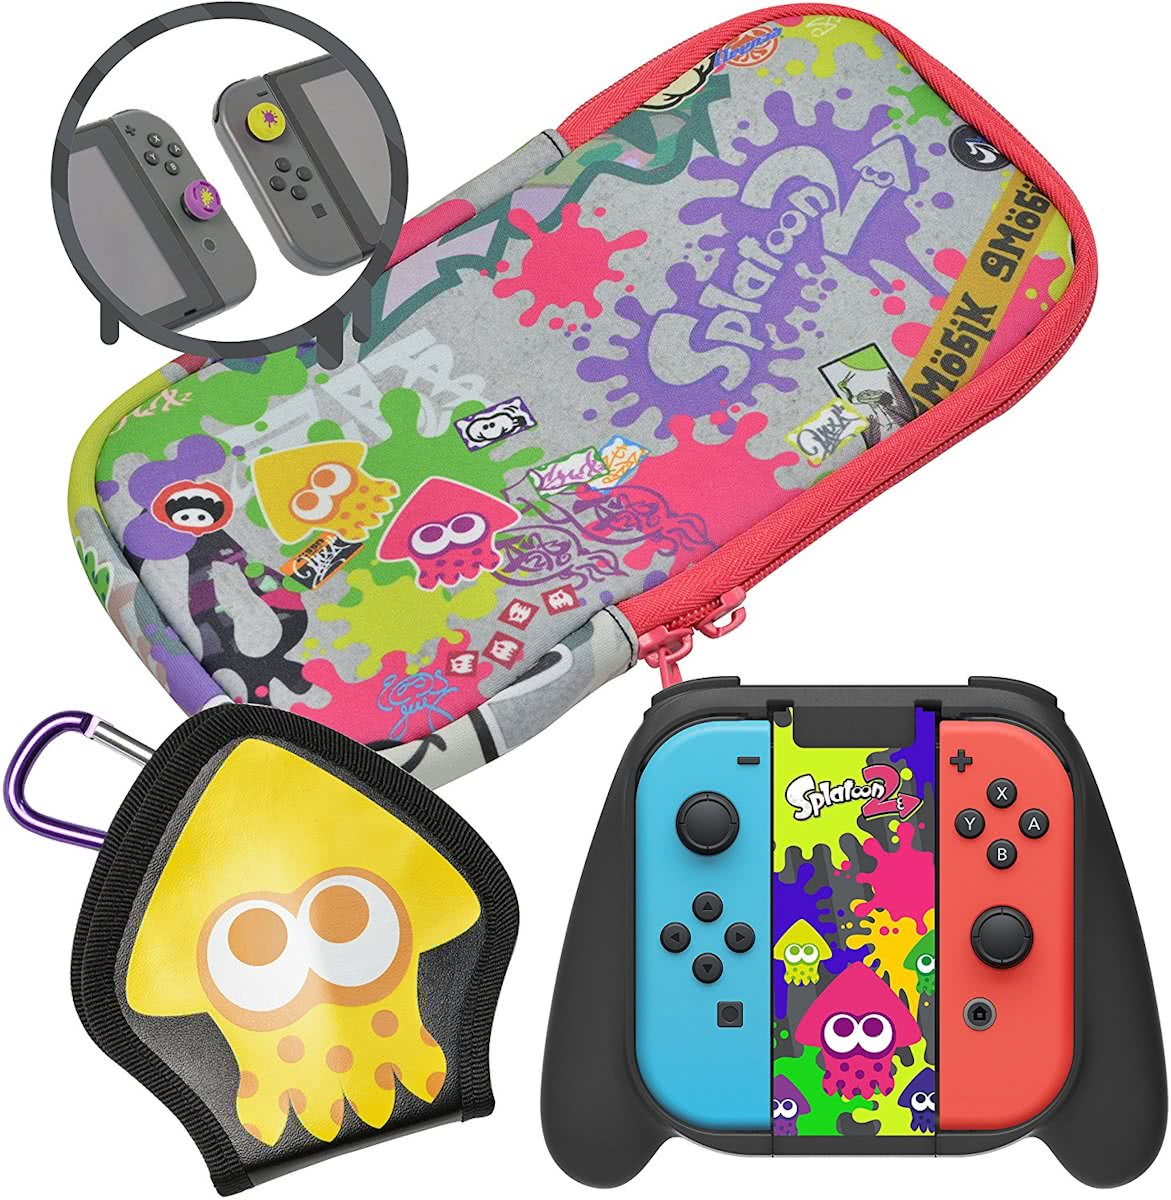 Splatoon 2 Splat Pack Deluxe - Nintendo Switch